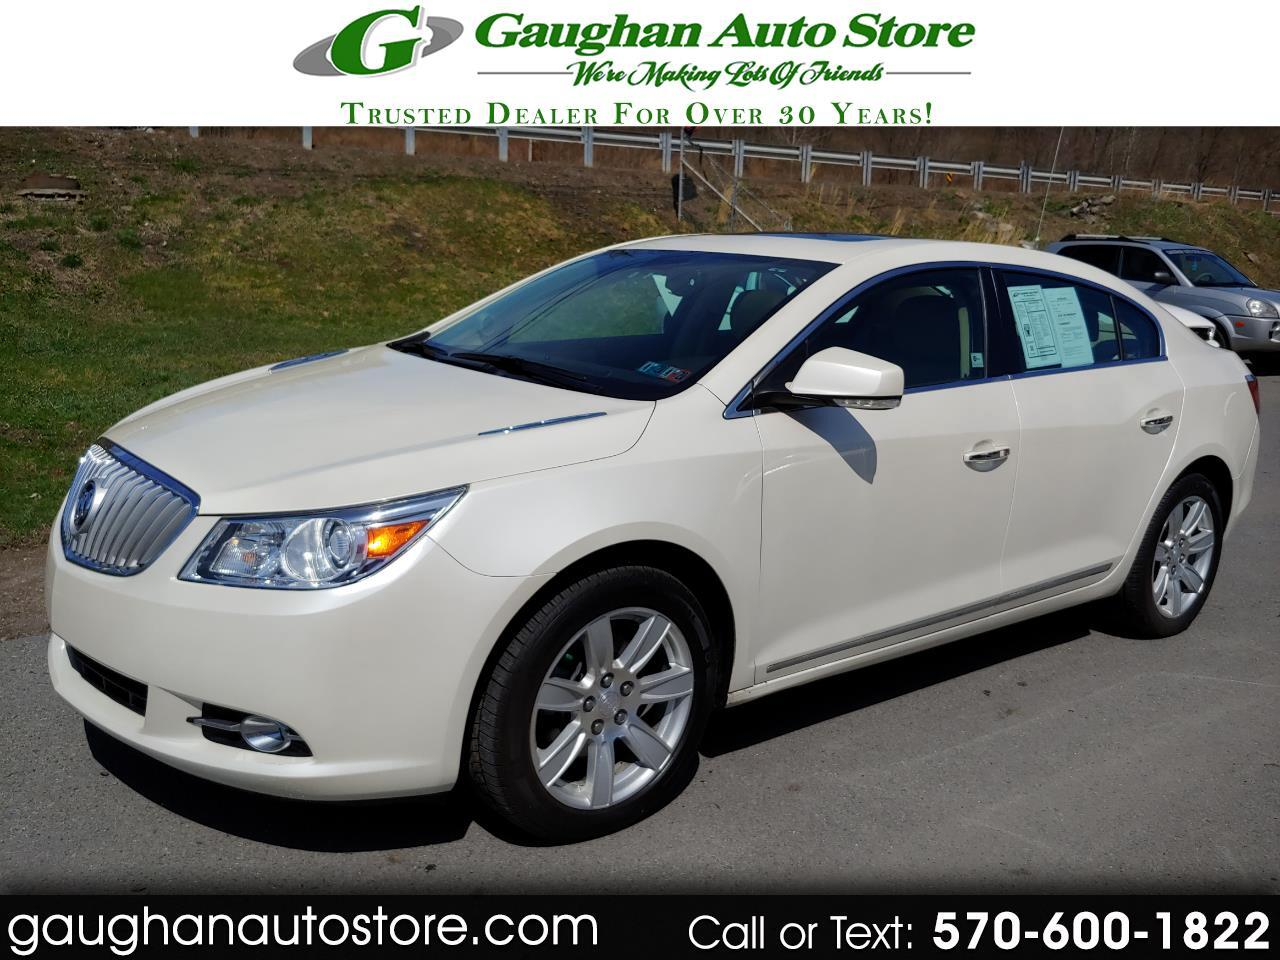 2011 Buick LaCrosse CXL AWD MOONROOF/CAMERA/NAVI/LEATHER